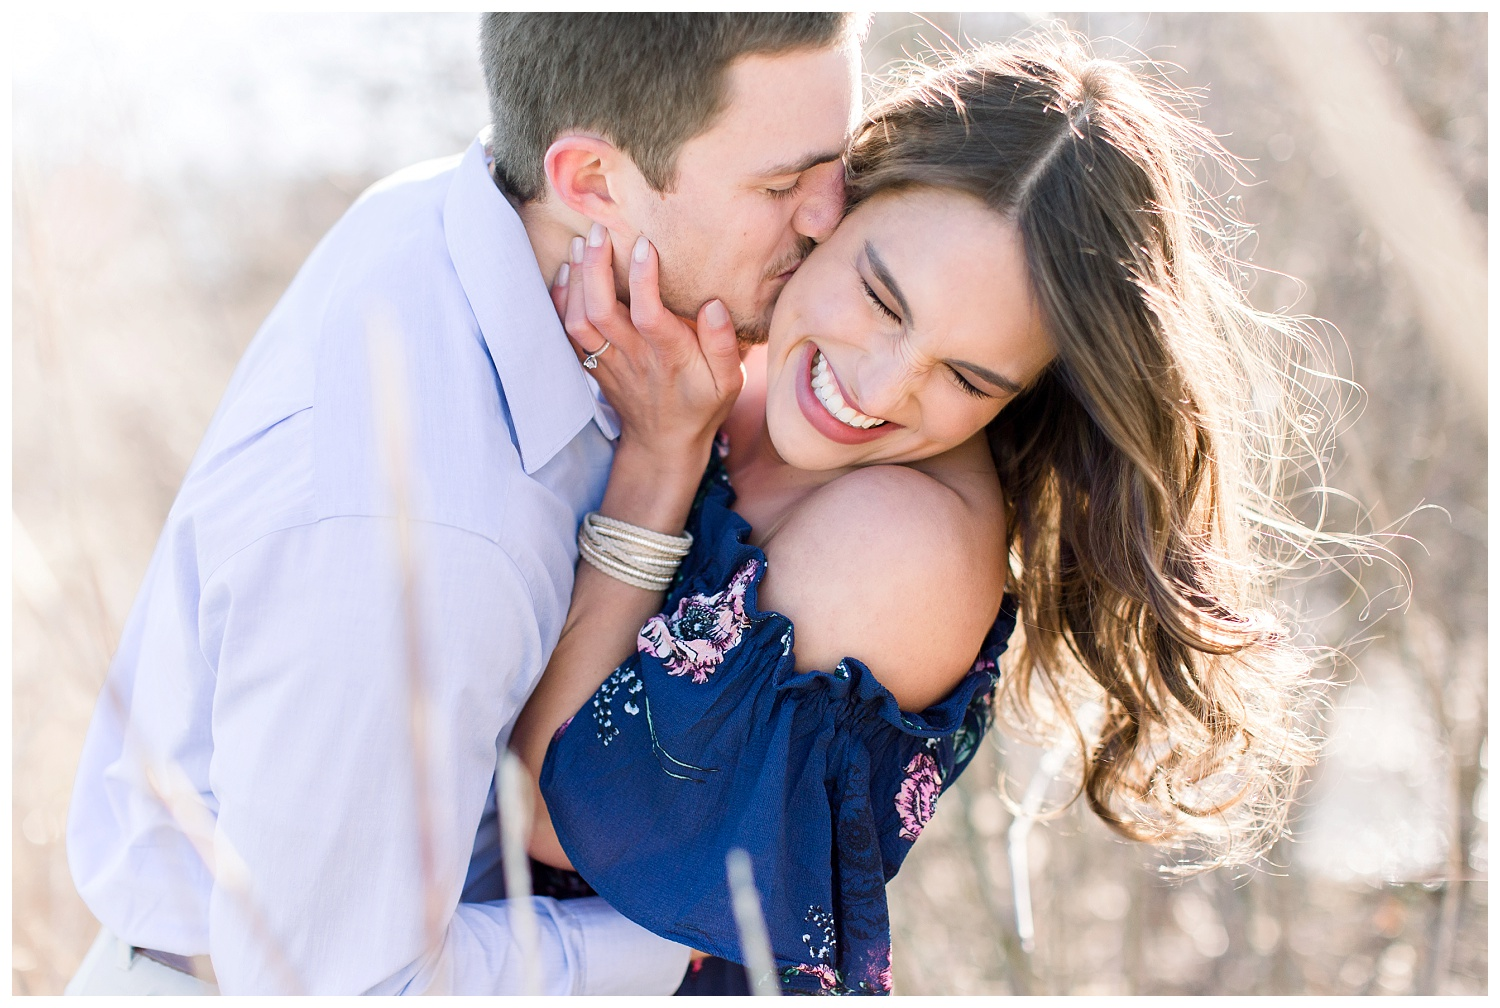 Genuine engagement photography in Kansas City